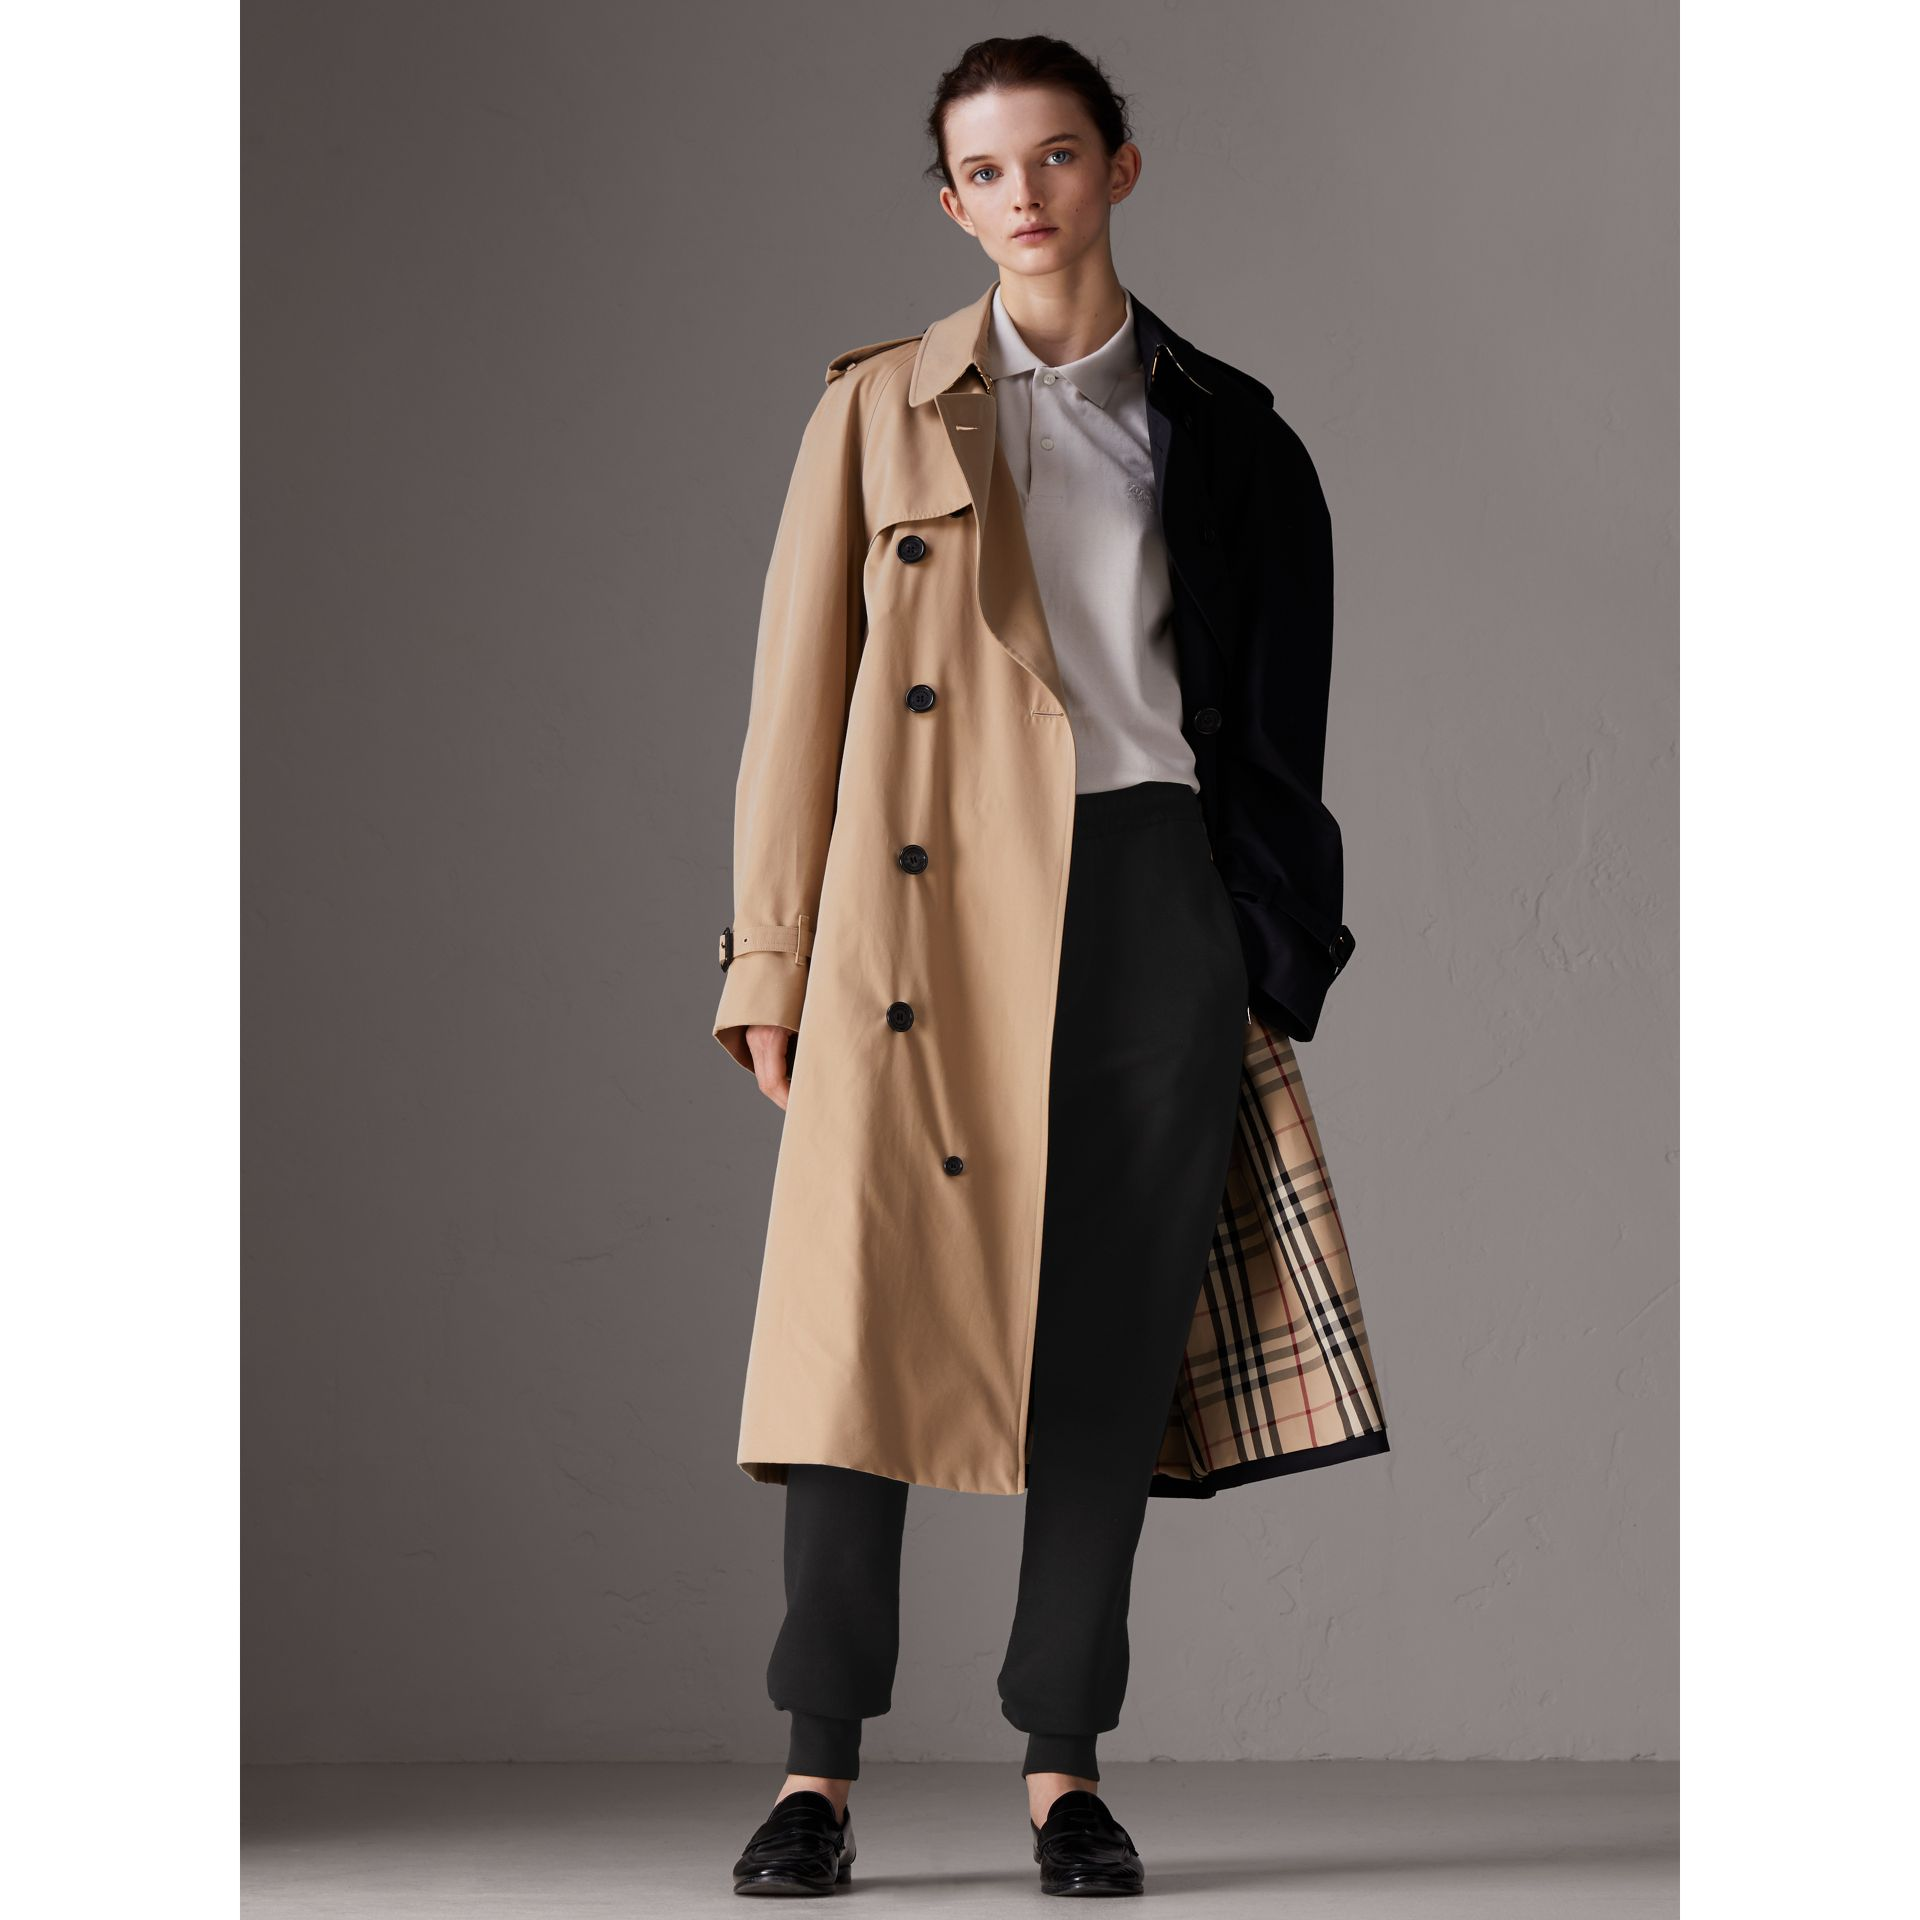 Gosha x Burberry Two-tone Trench Coat in Honey | Burberry - gallery image 3